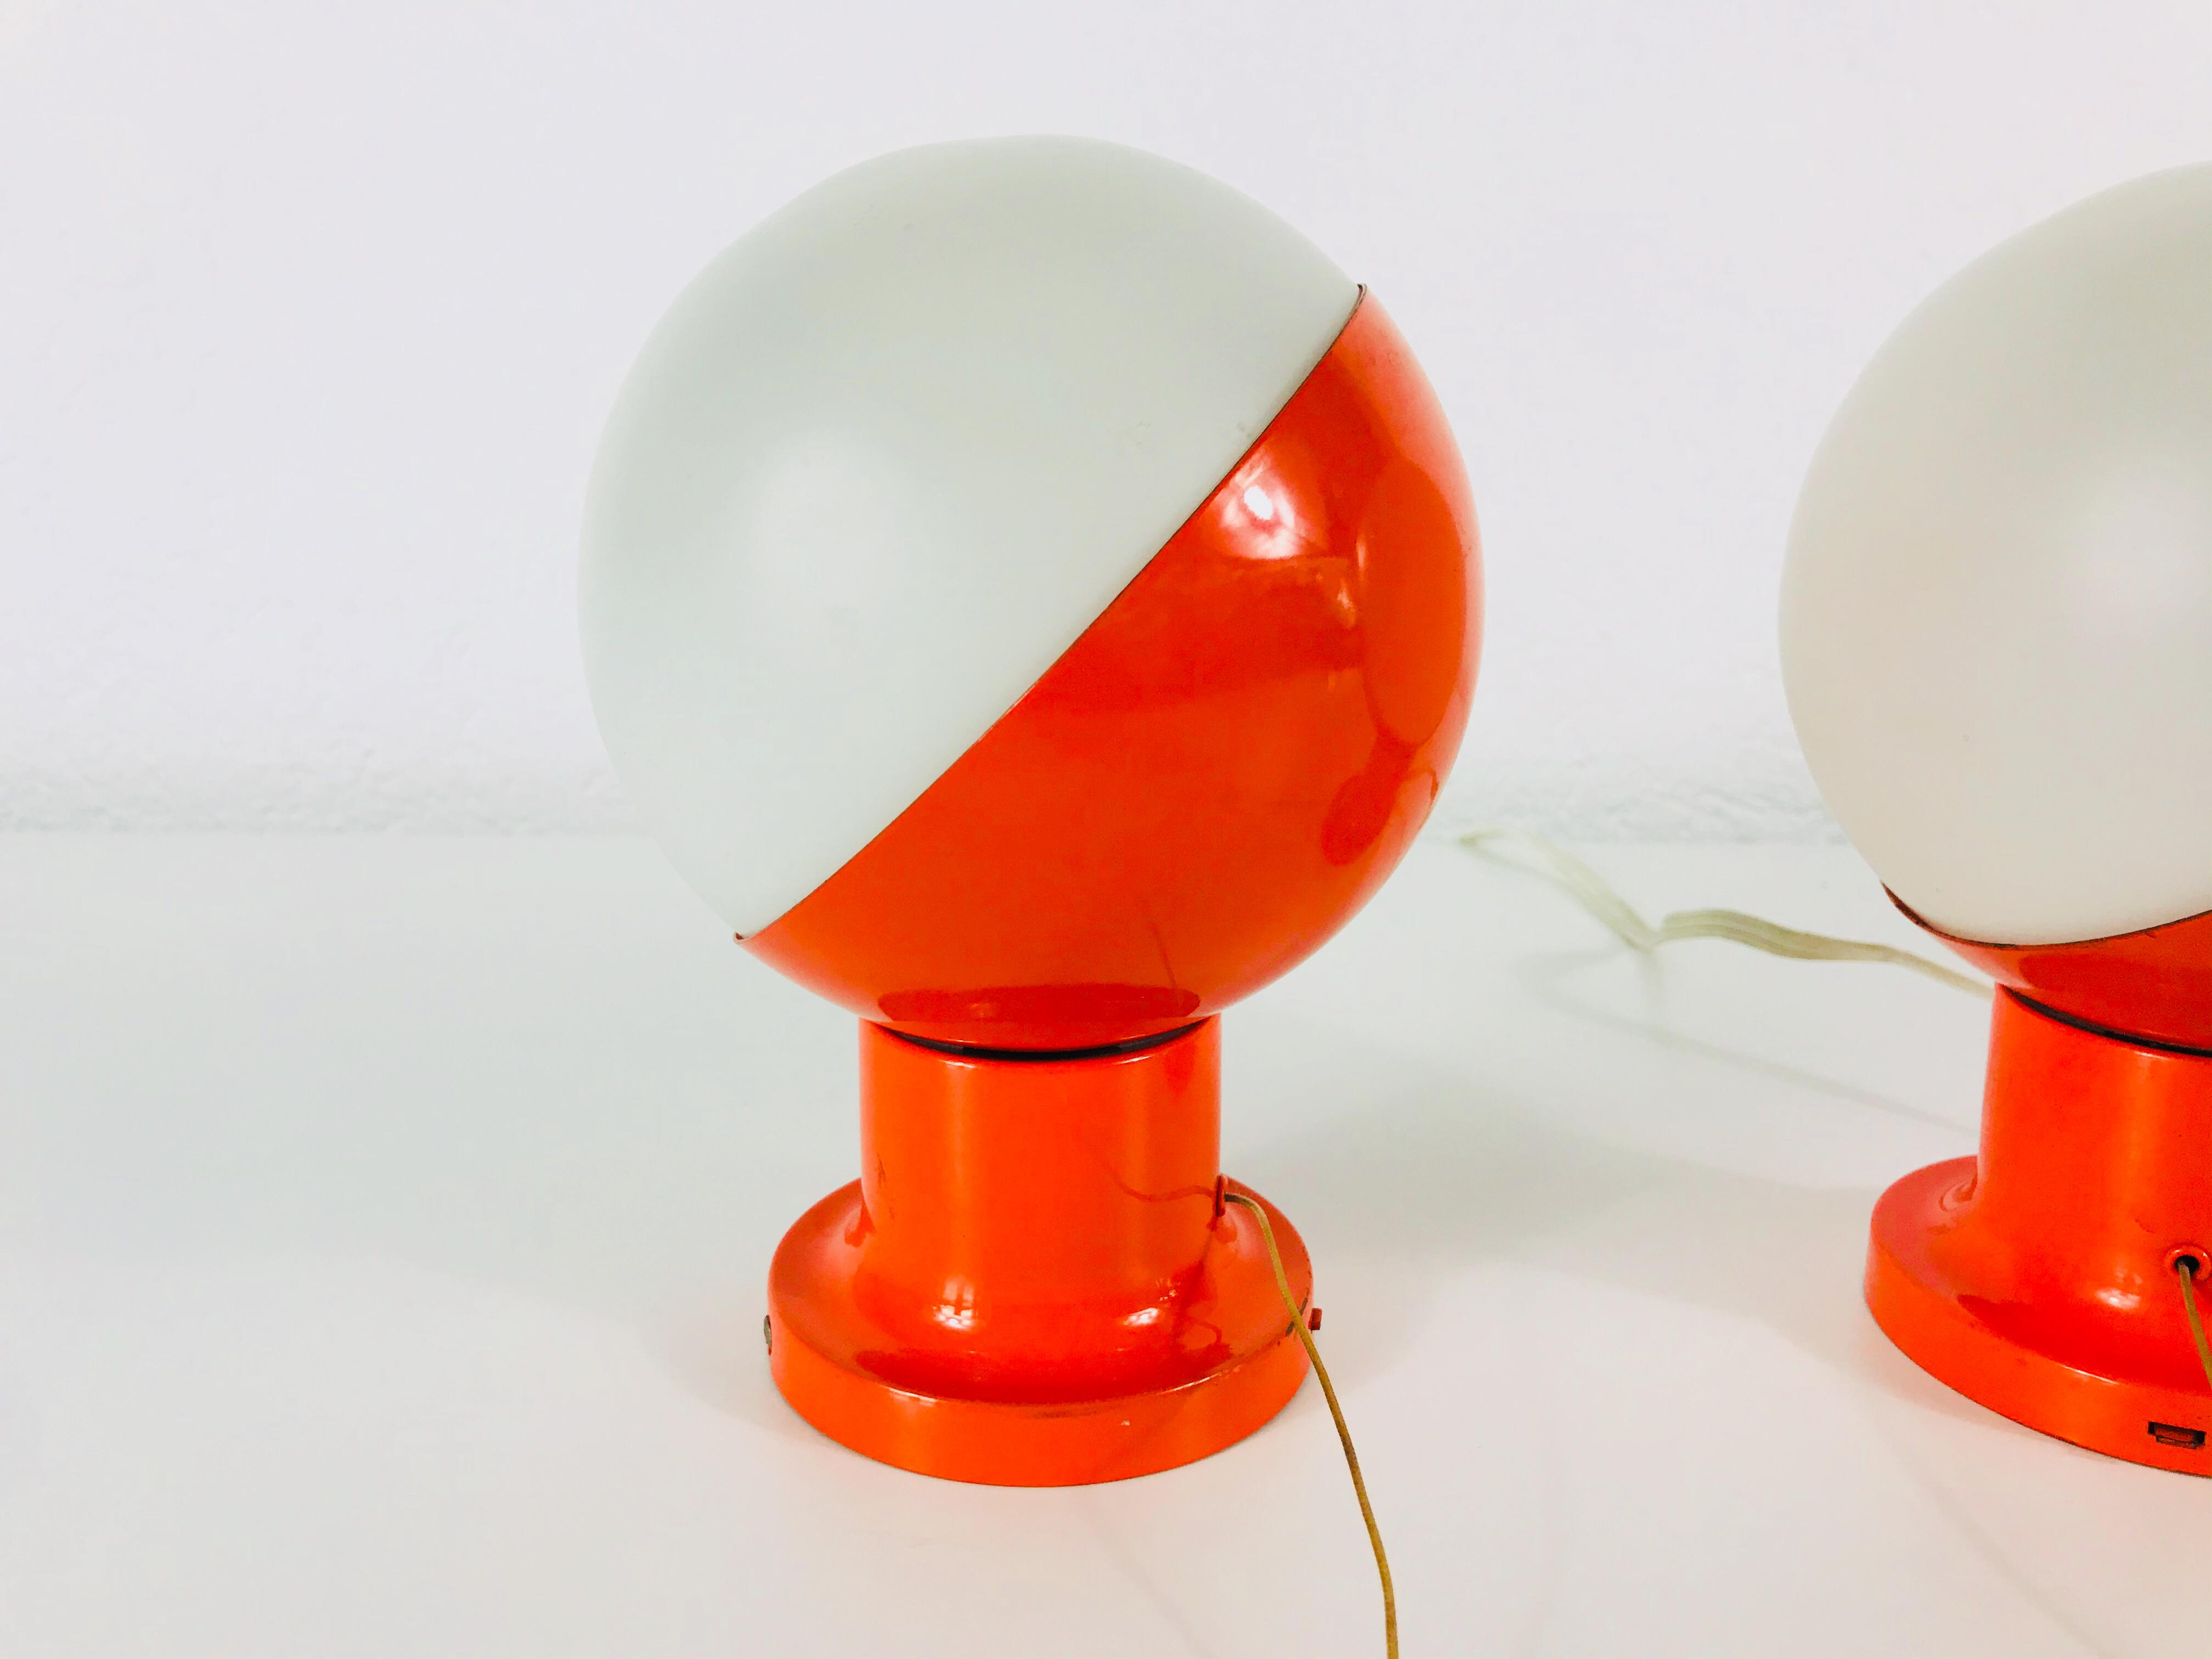 Kaiser lamp Midcentury opal Glas red colour stand lamp 60s 4 armed Kaiser lamp amazing vintage condition Metall Body-1960s- desk lamp